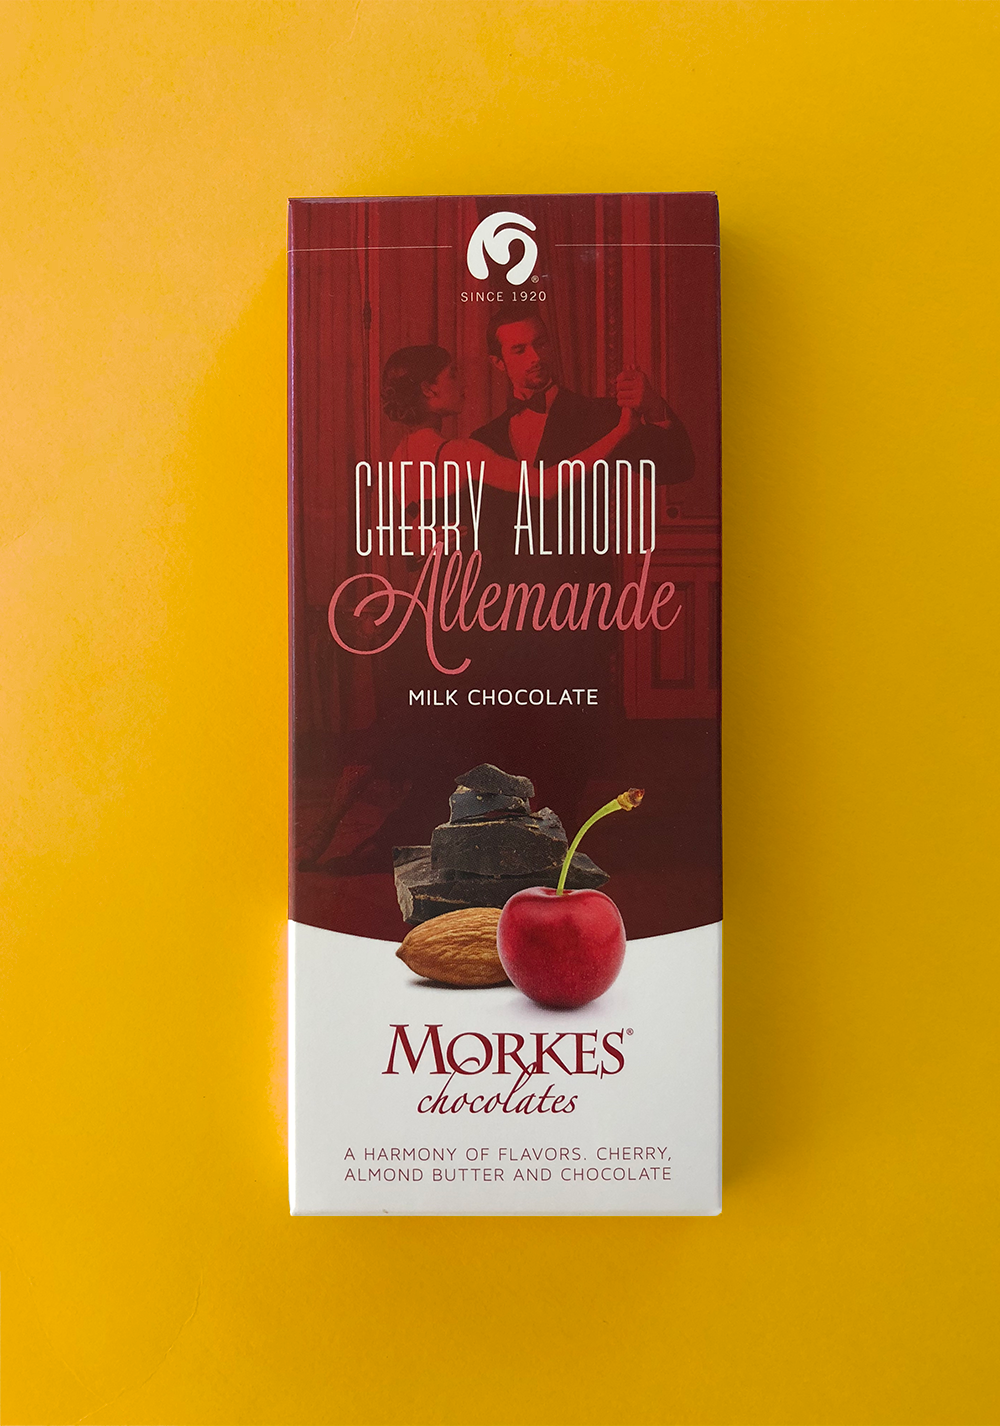 milk-chocolate-cherry-almond-allemande-morkes